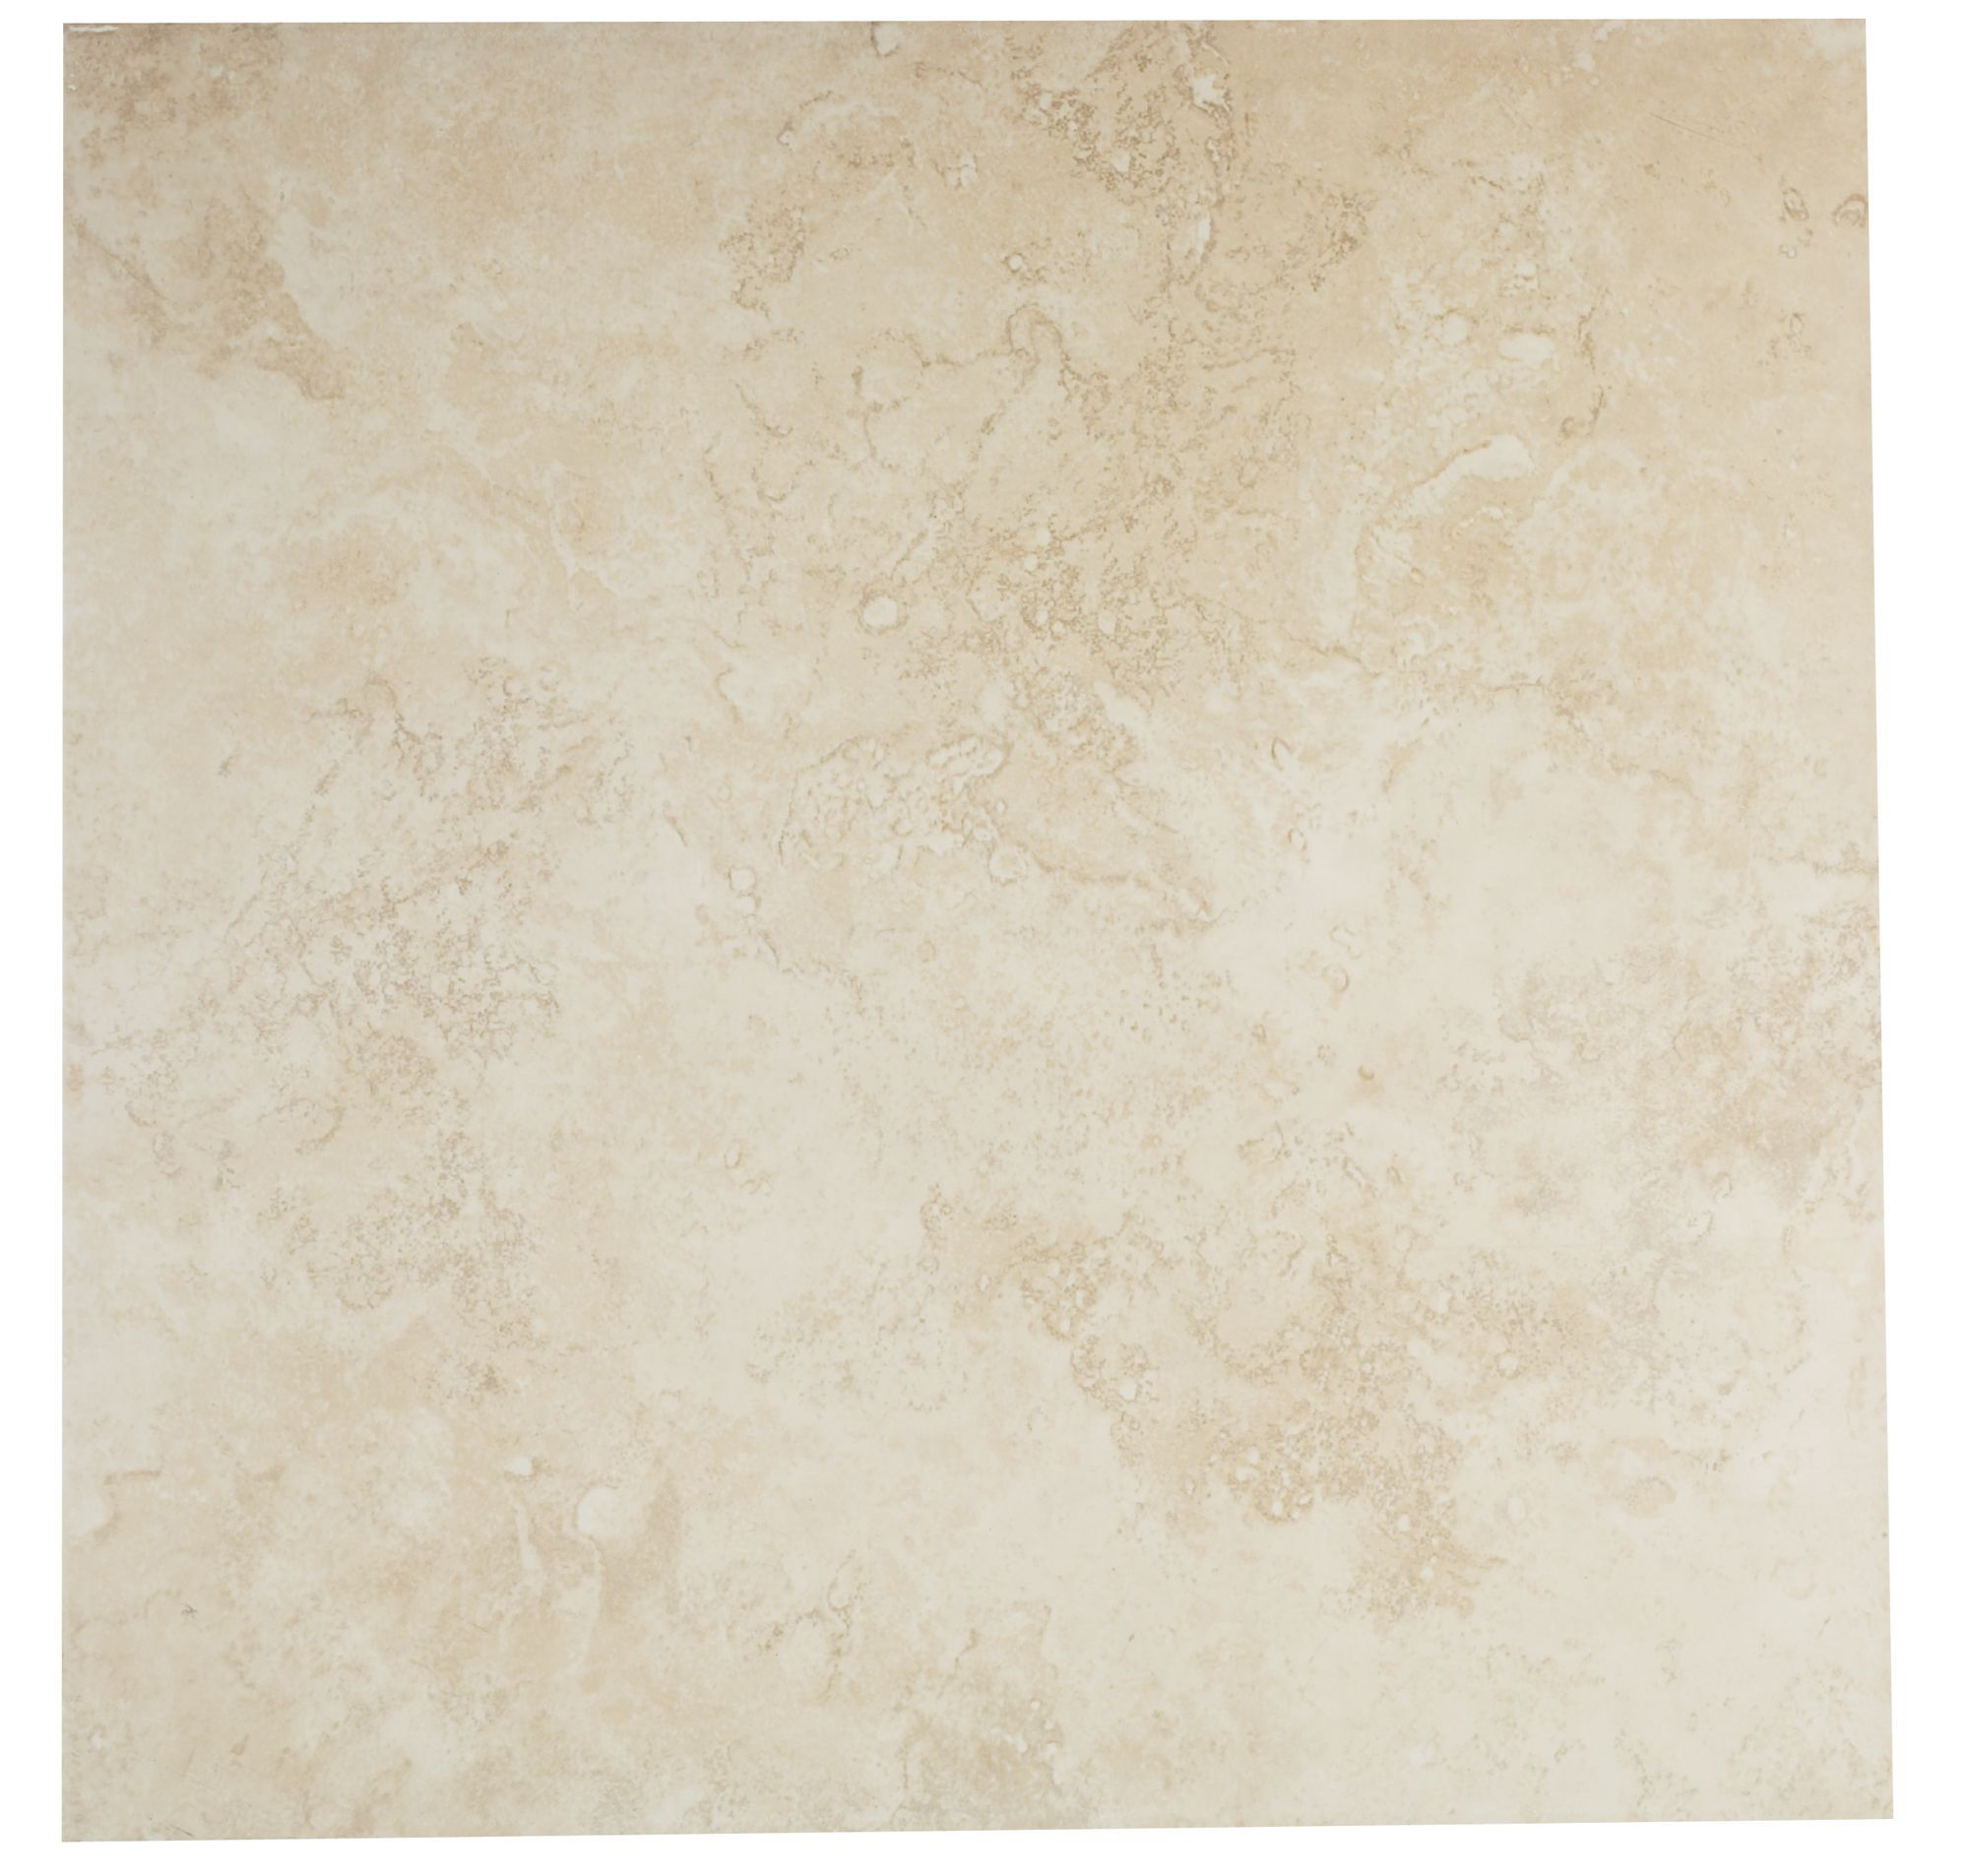 Castle Travertine Cream Stone Effect Ceramic Wall Amp Floor